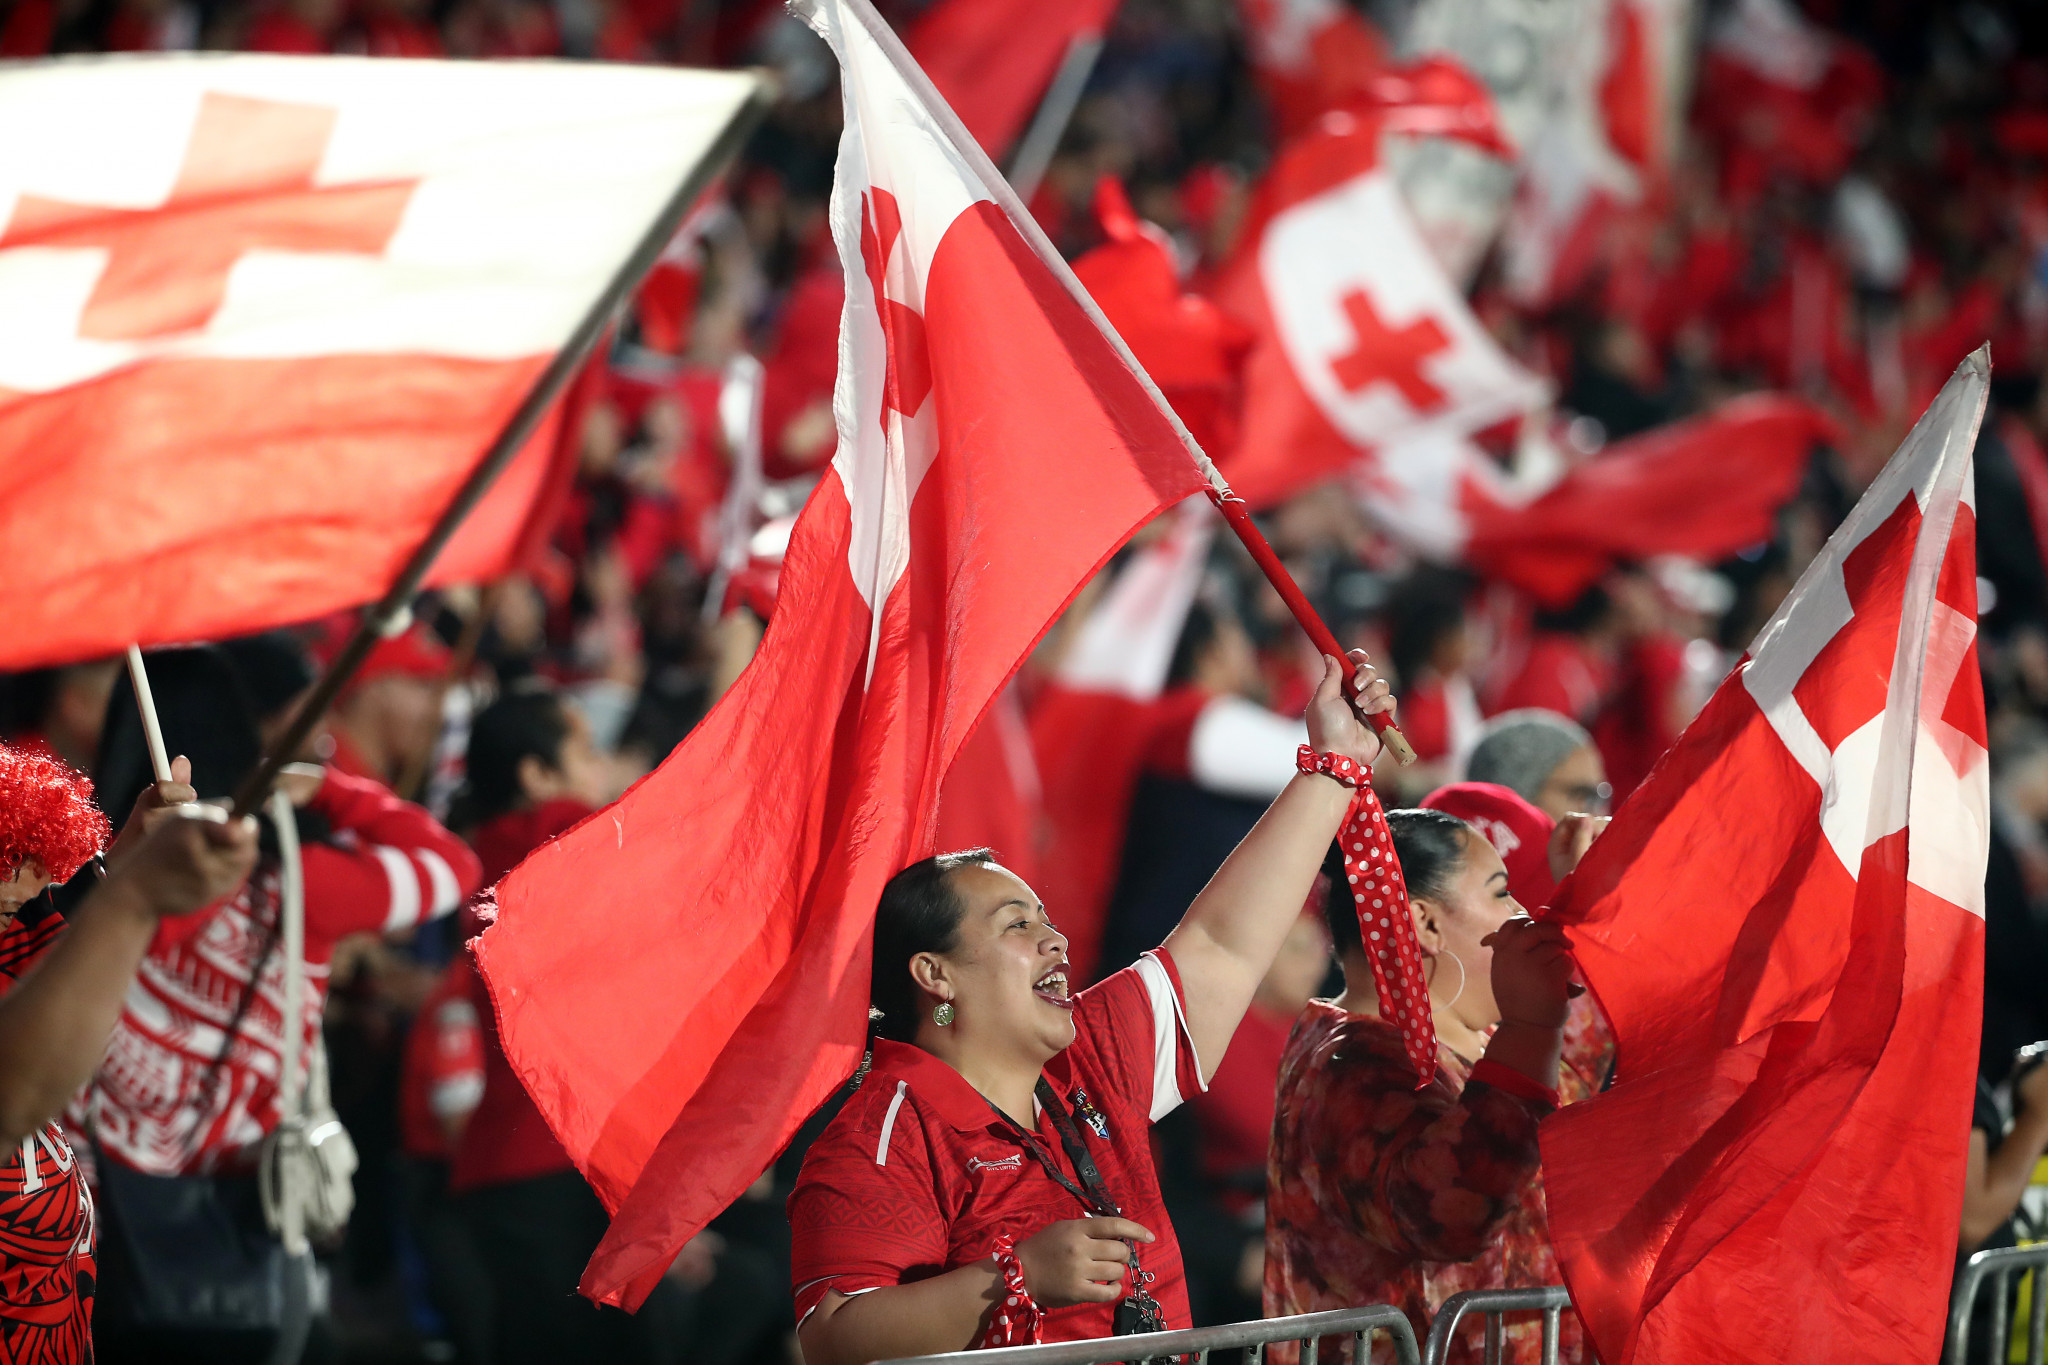 The Tonga National Rugby League Board has appealed its expulsion from the sport to the Court of Arbitration for Sport ©Getty Images